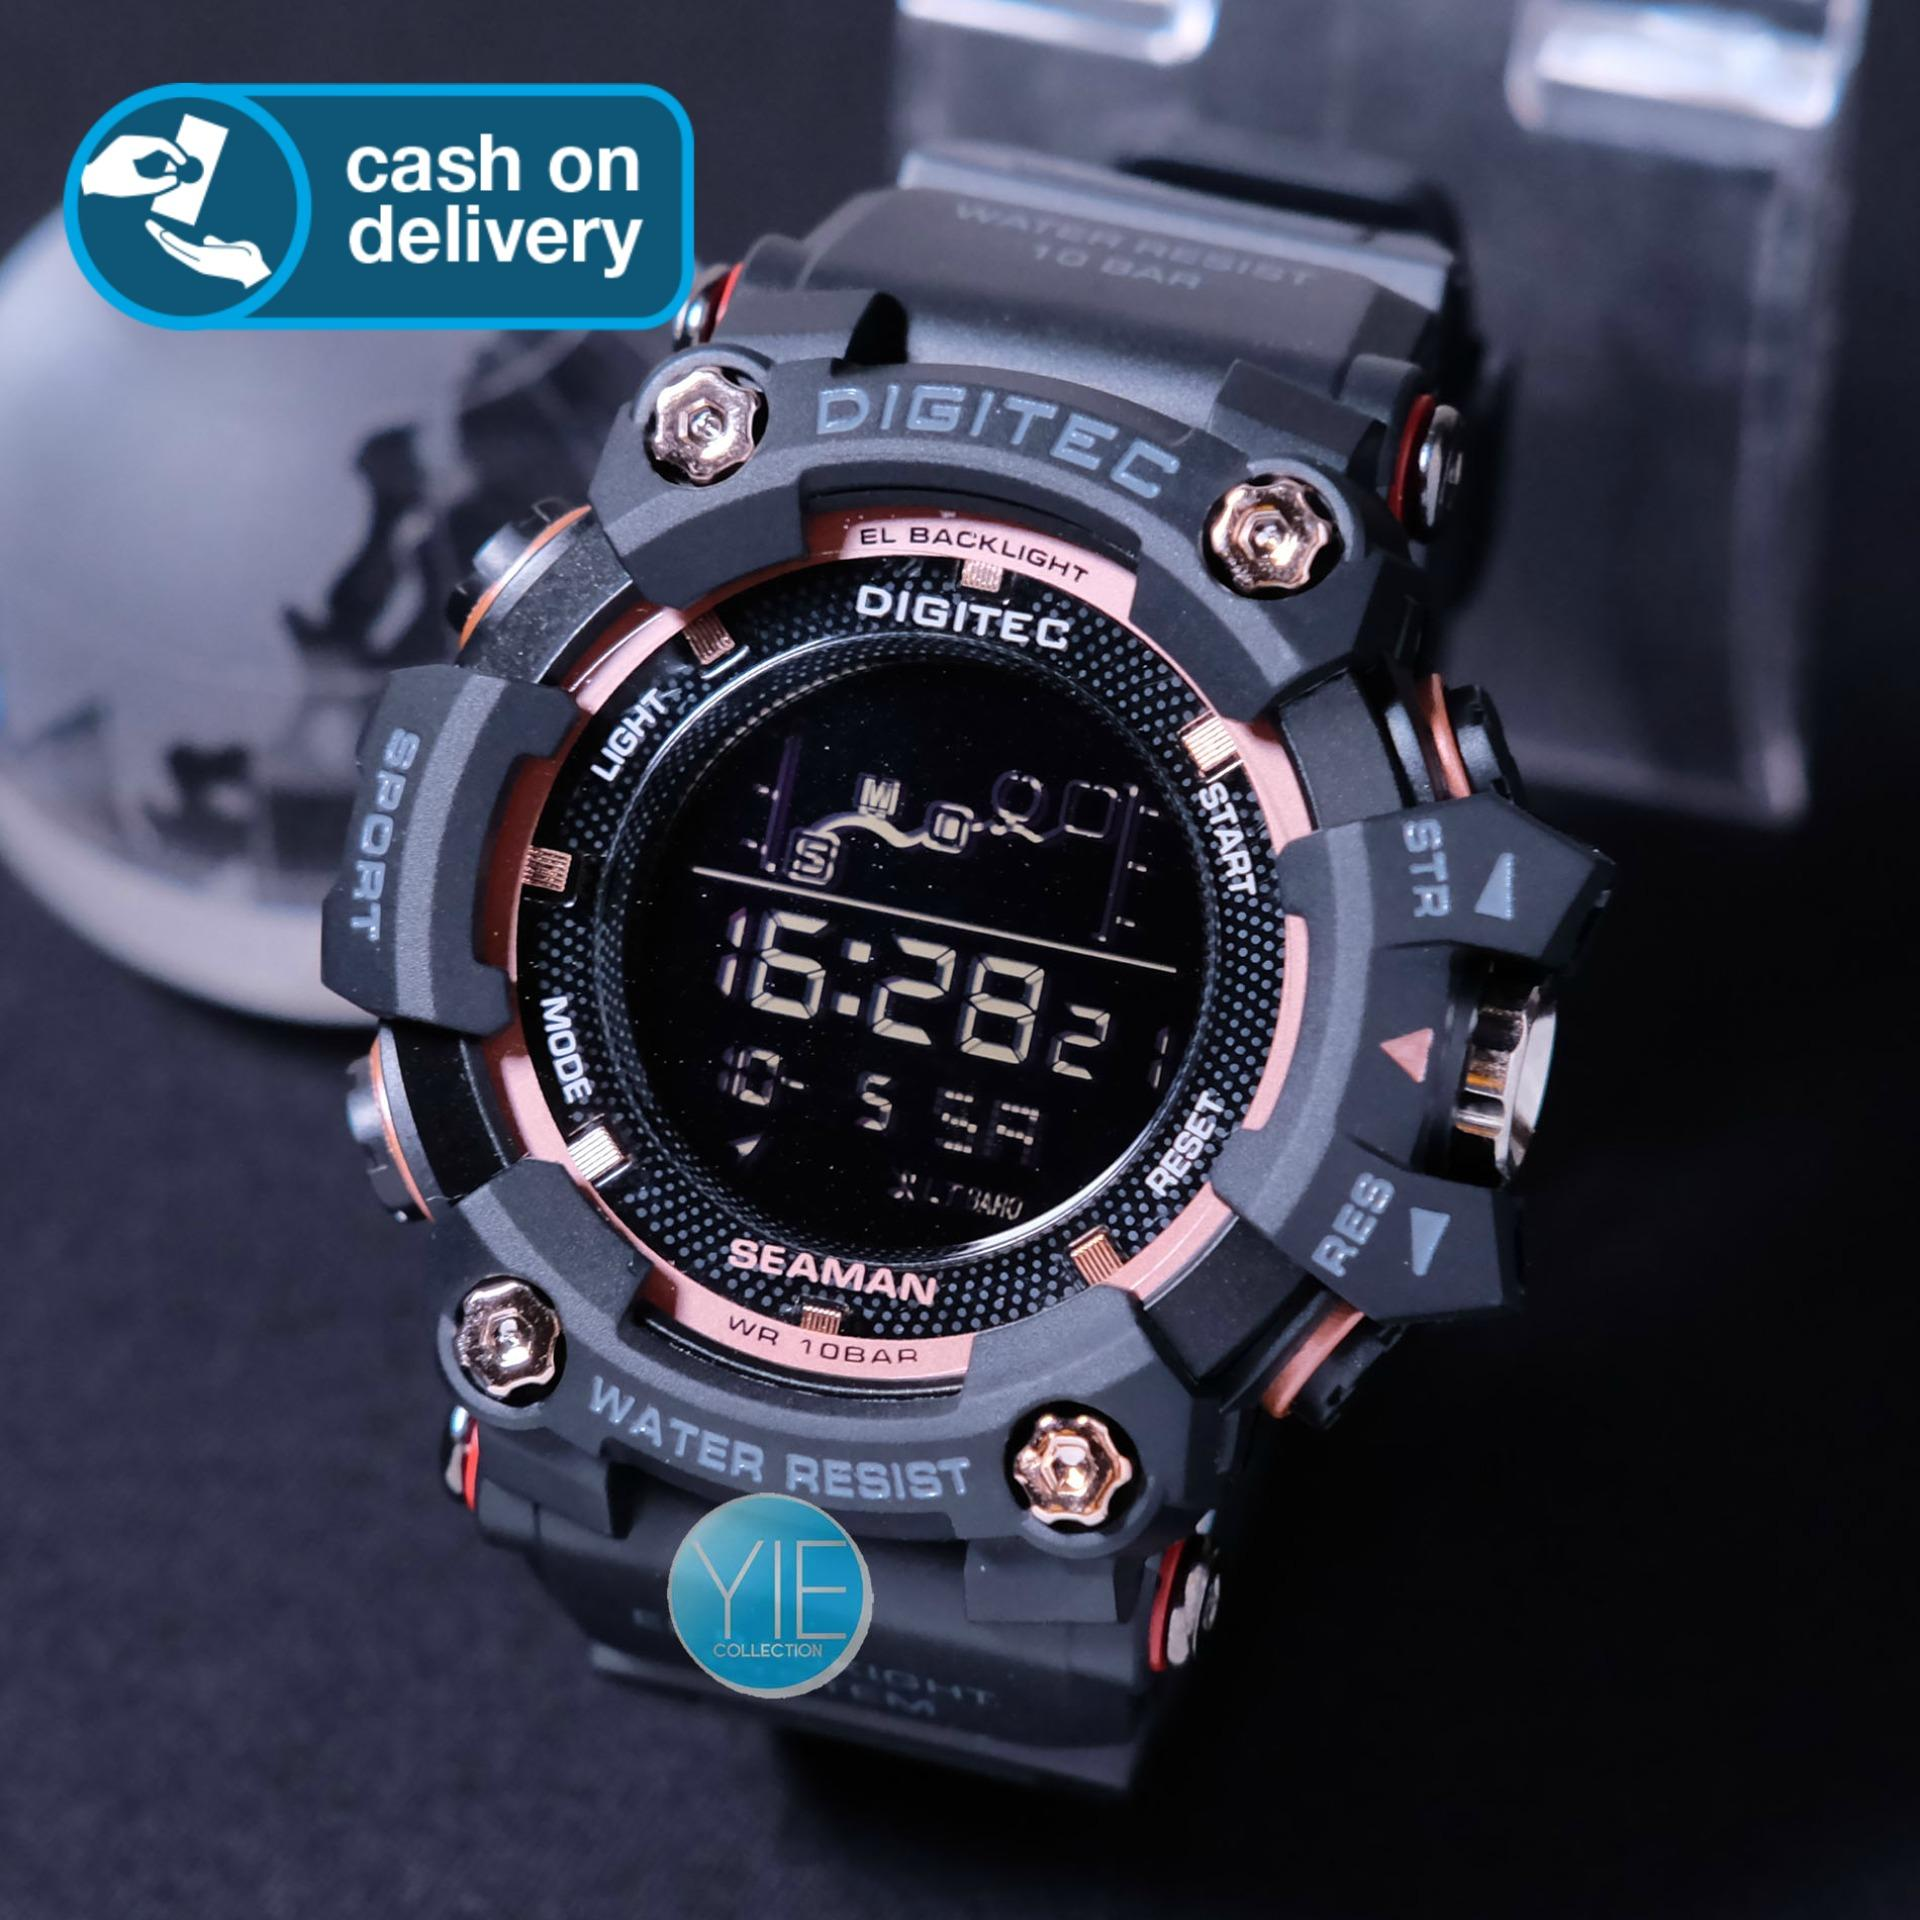 Jam Tangan Sport Pria Army Digitec Seaman New Edition DG 3096 T Original Anti Air Strap Karet FH